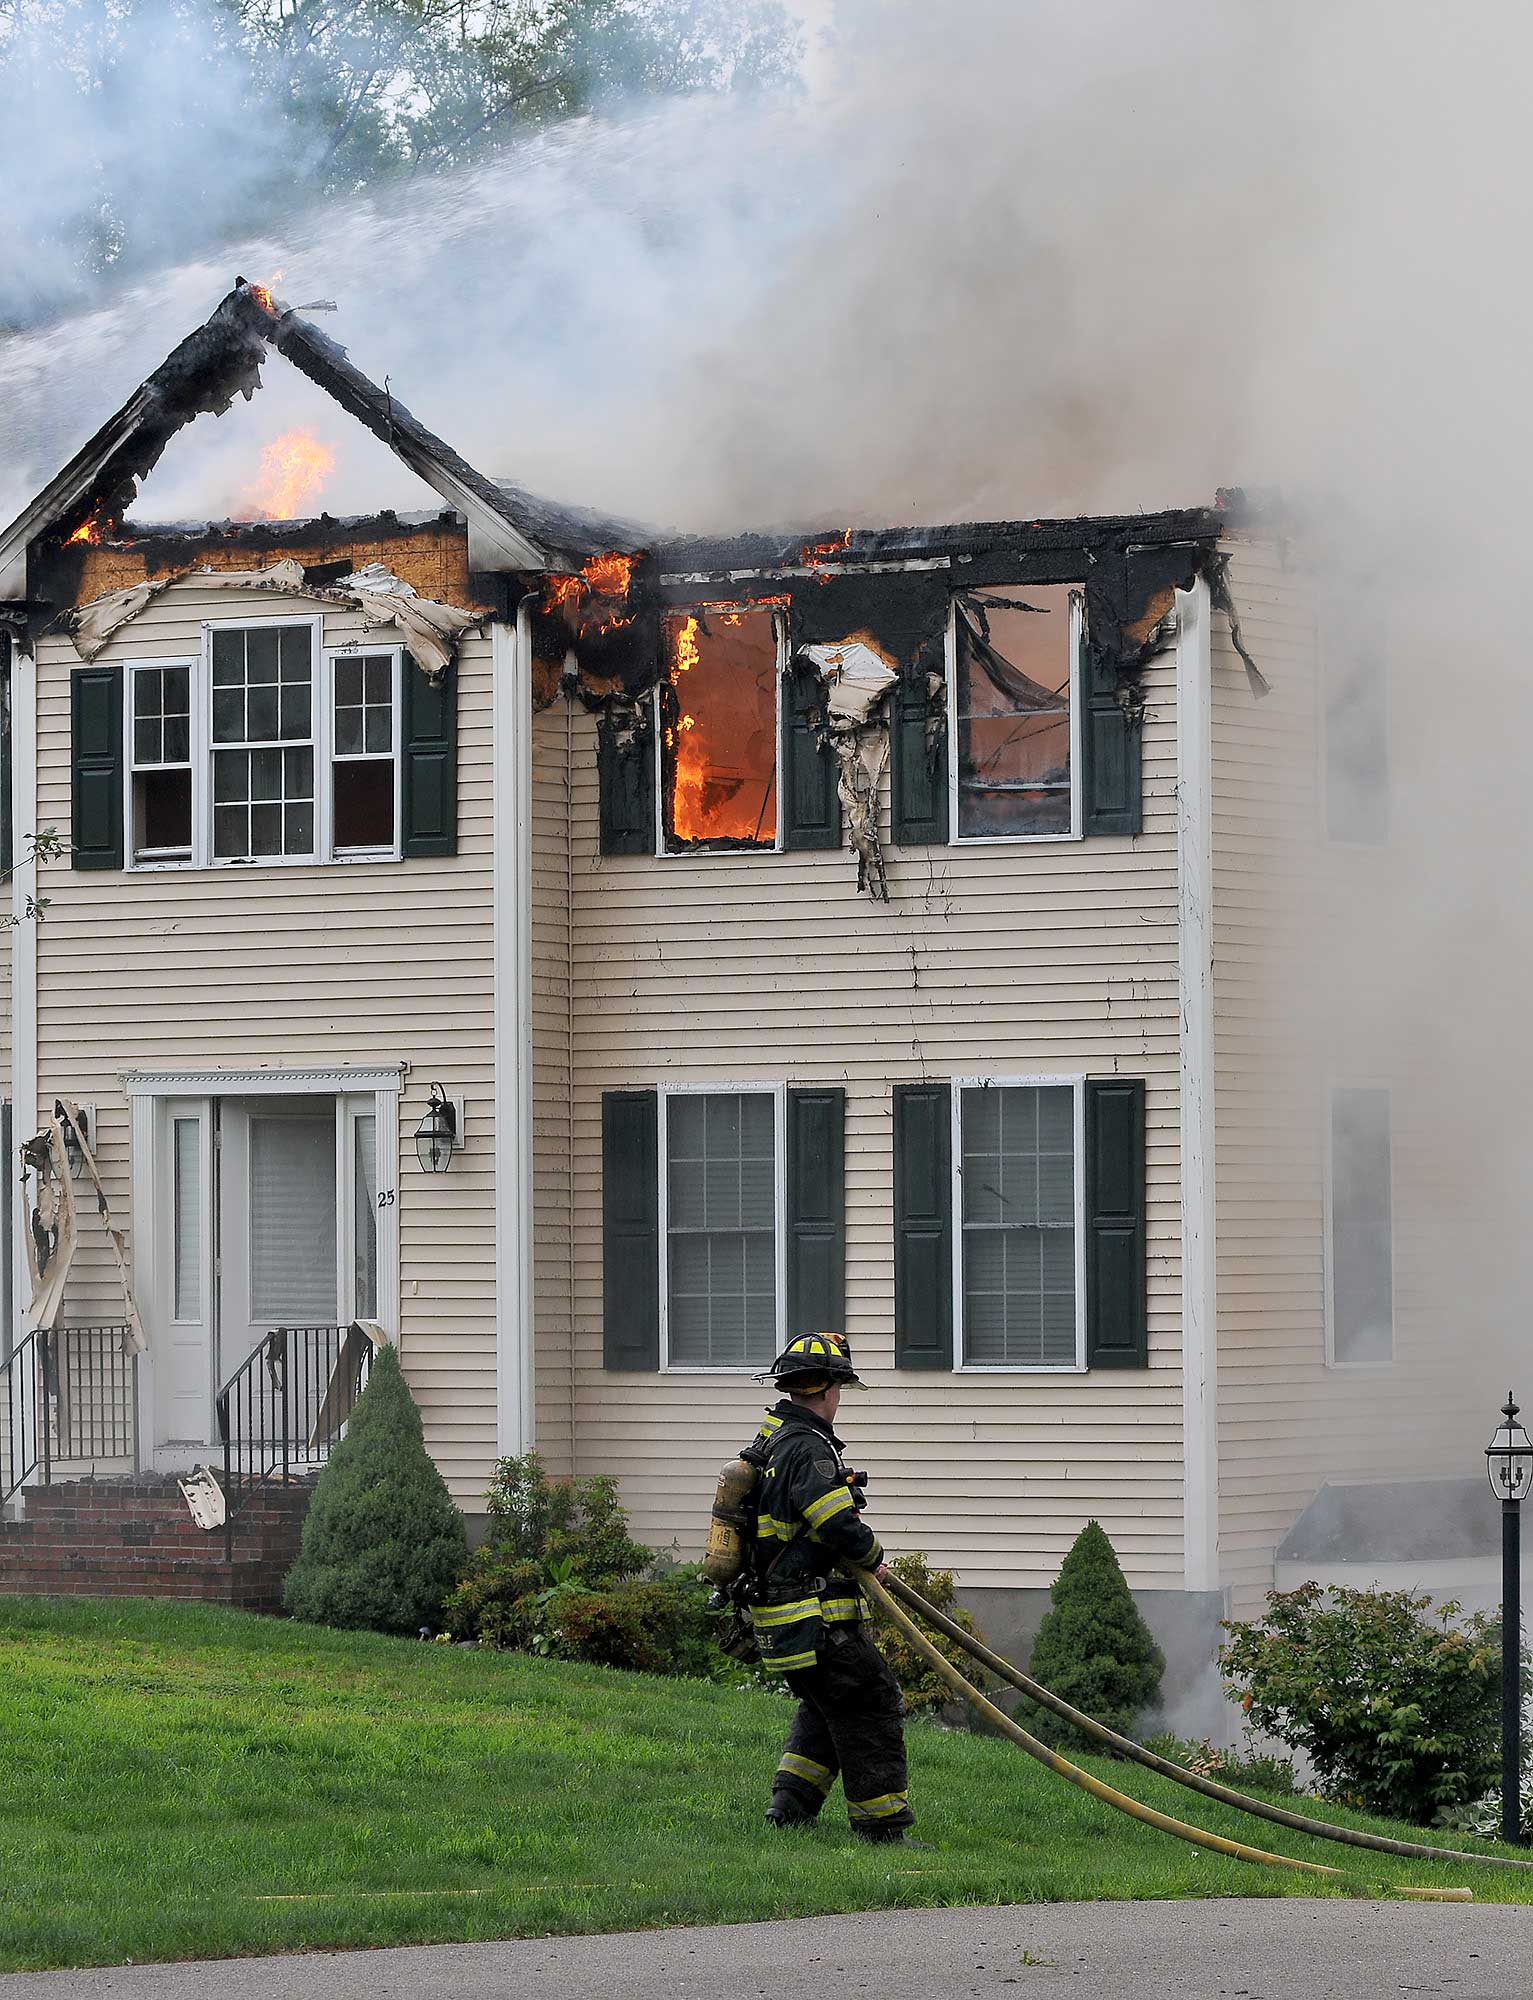 A firefighter moves a hose into position outside a house into which a small plane had crashed in Plainville, Mass., June 28, 2015.